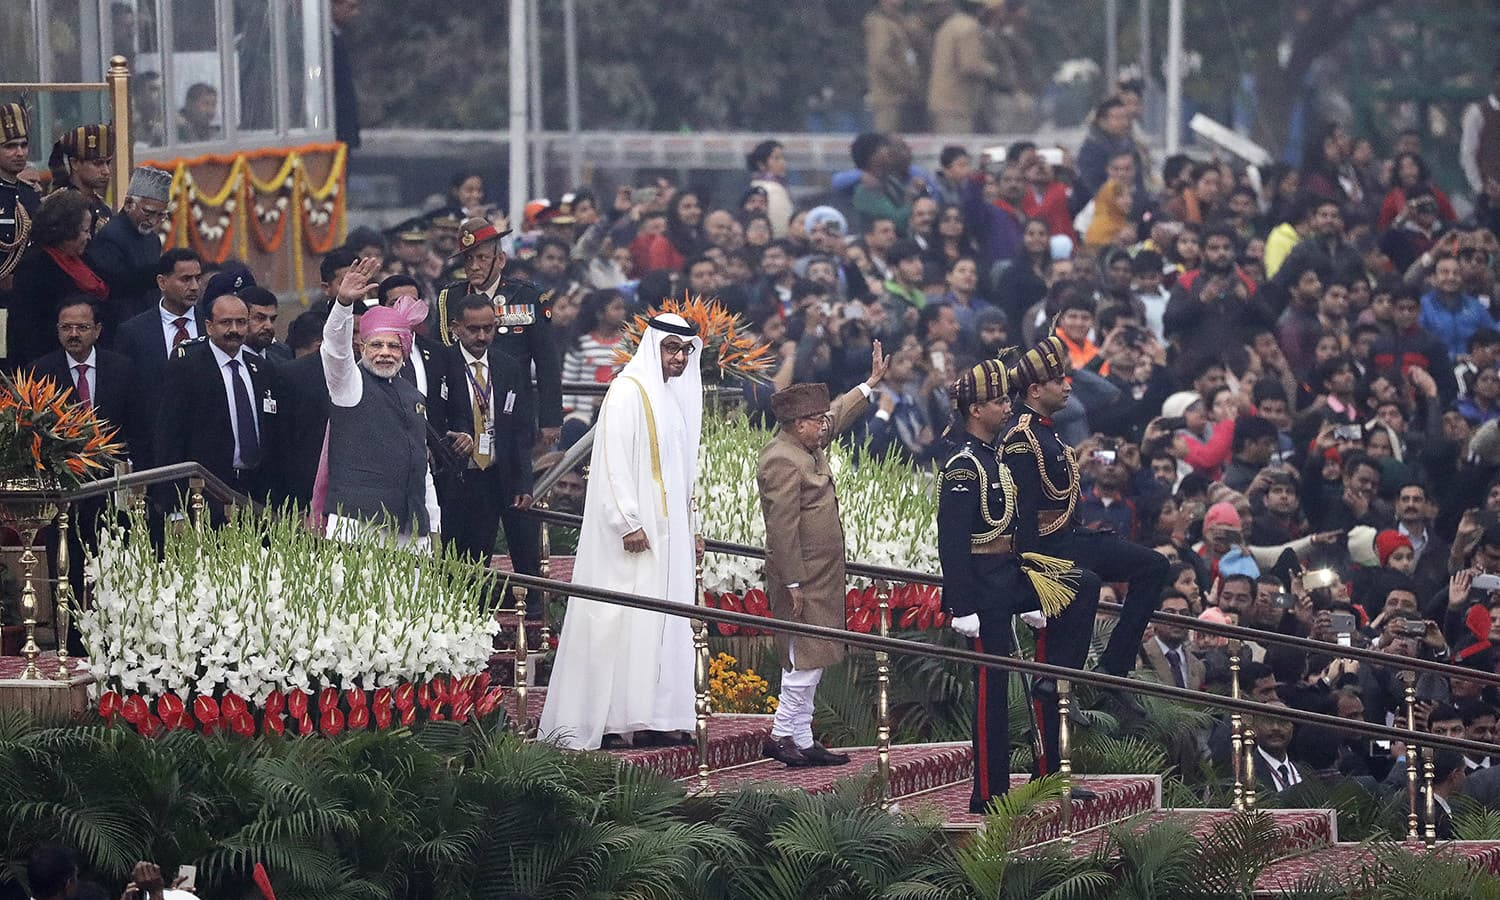 Indian Prime Minister Narendra Modi and Indian President Pranab Mukherjee wave to the crowd as they leave after witnessing the Republic Day parade along with Abu Dhabi's Crown Prince Sheikh Mohammed bin Zayed Al Nahyan, in white robe, in New Delhi.— AP